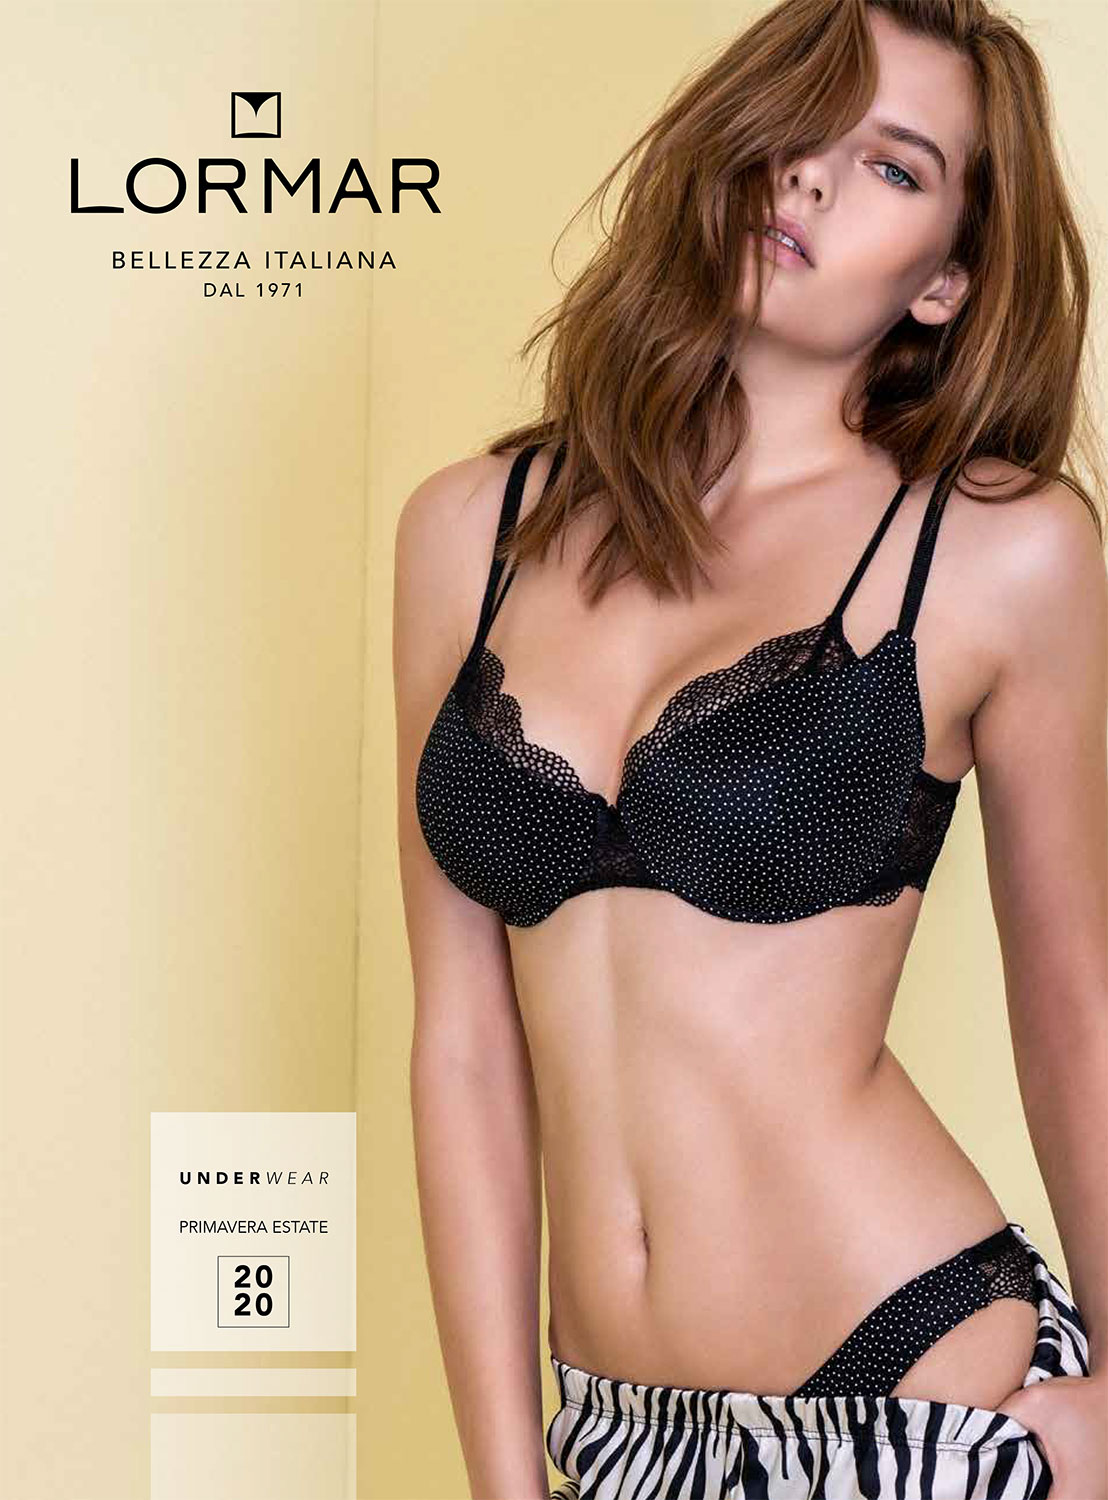 LORMAR CORSETRY SS 2020